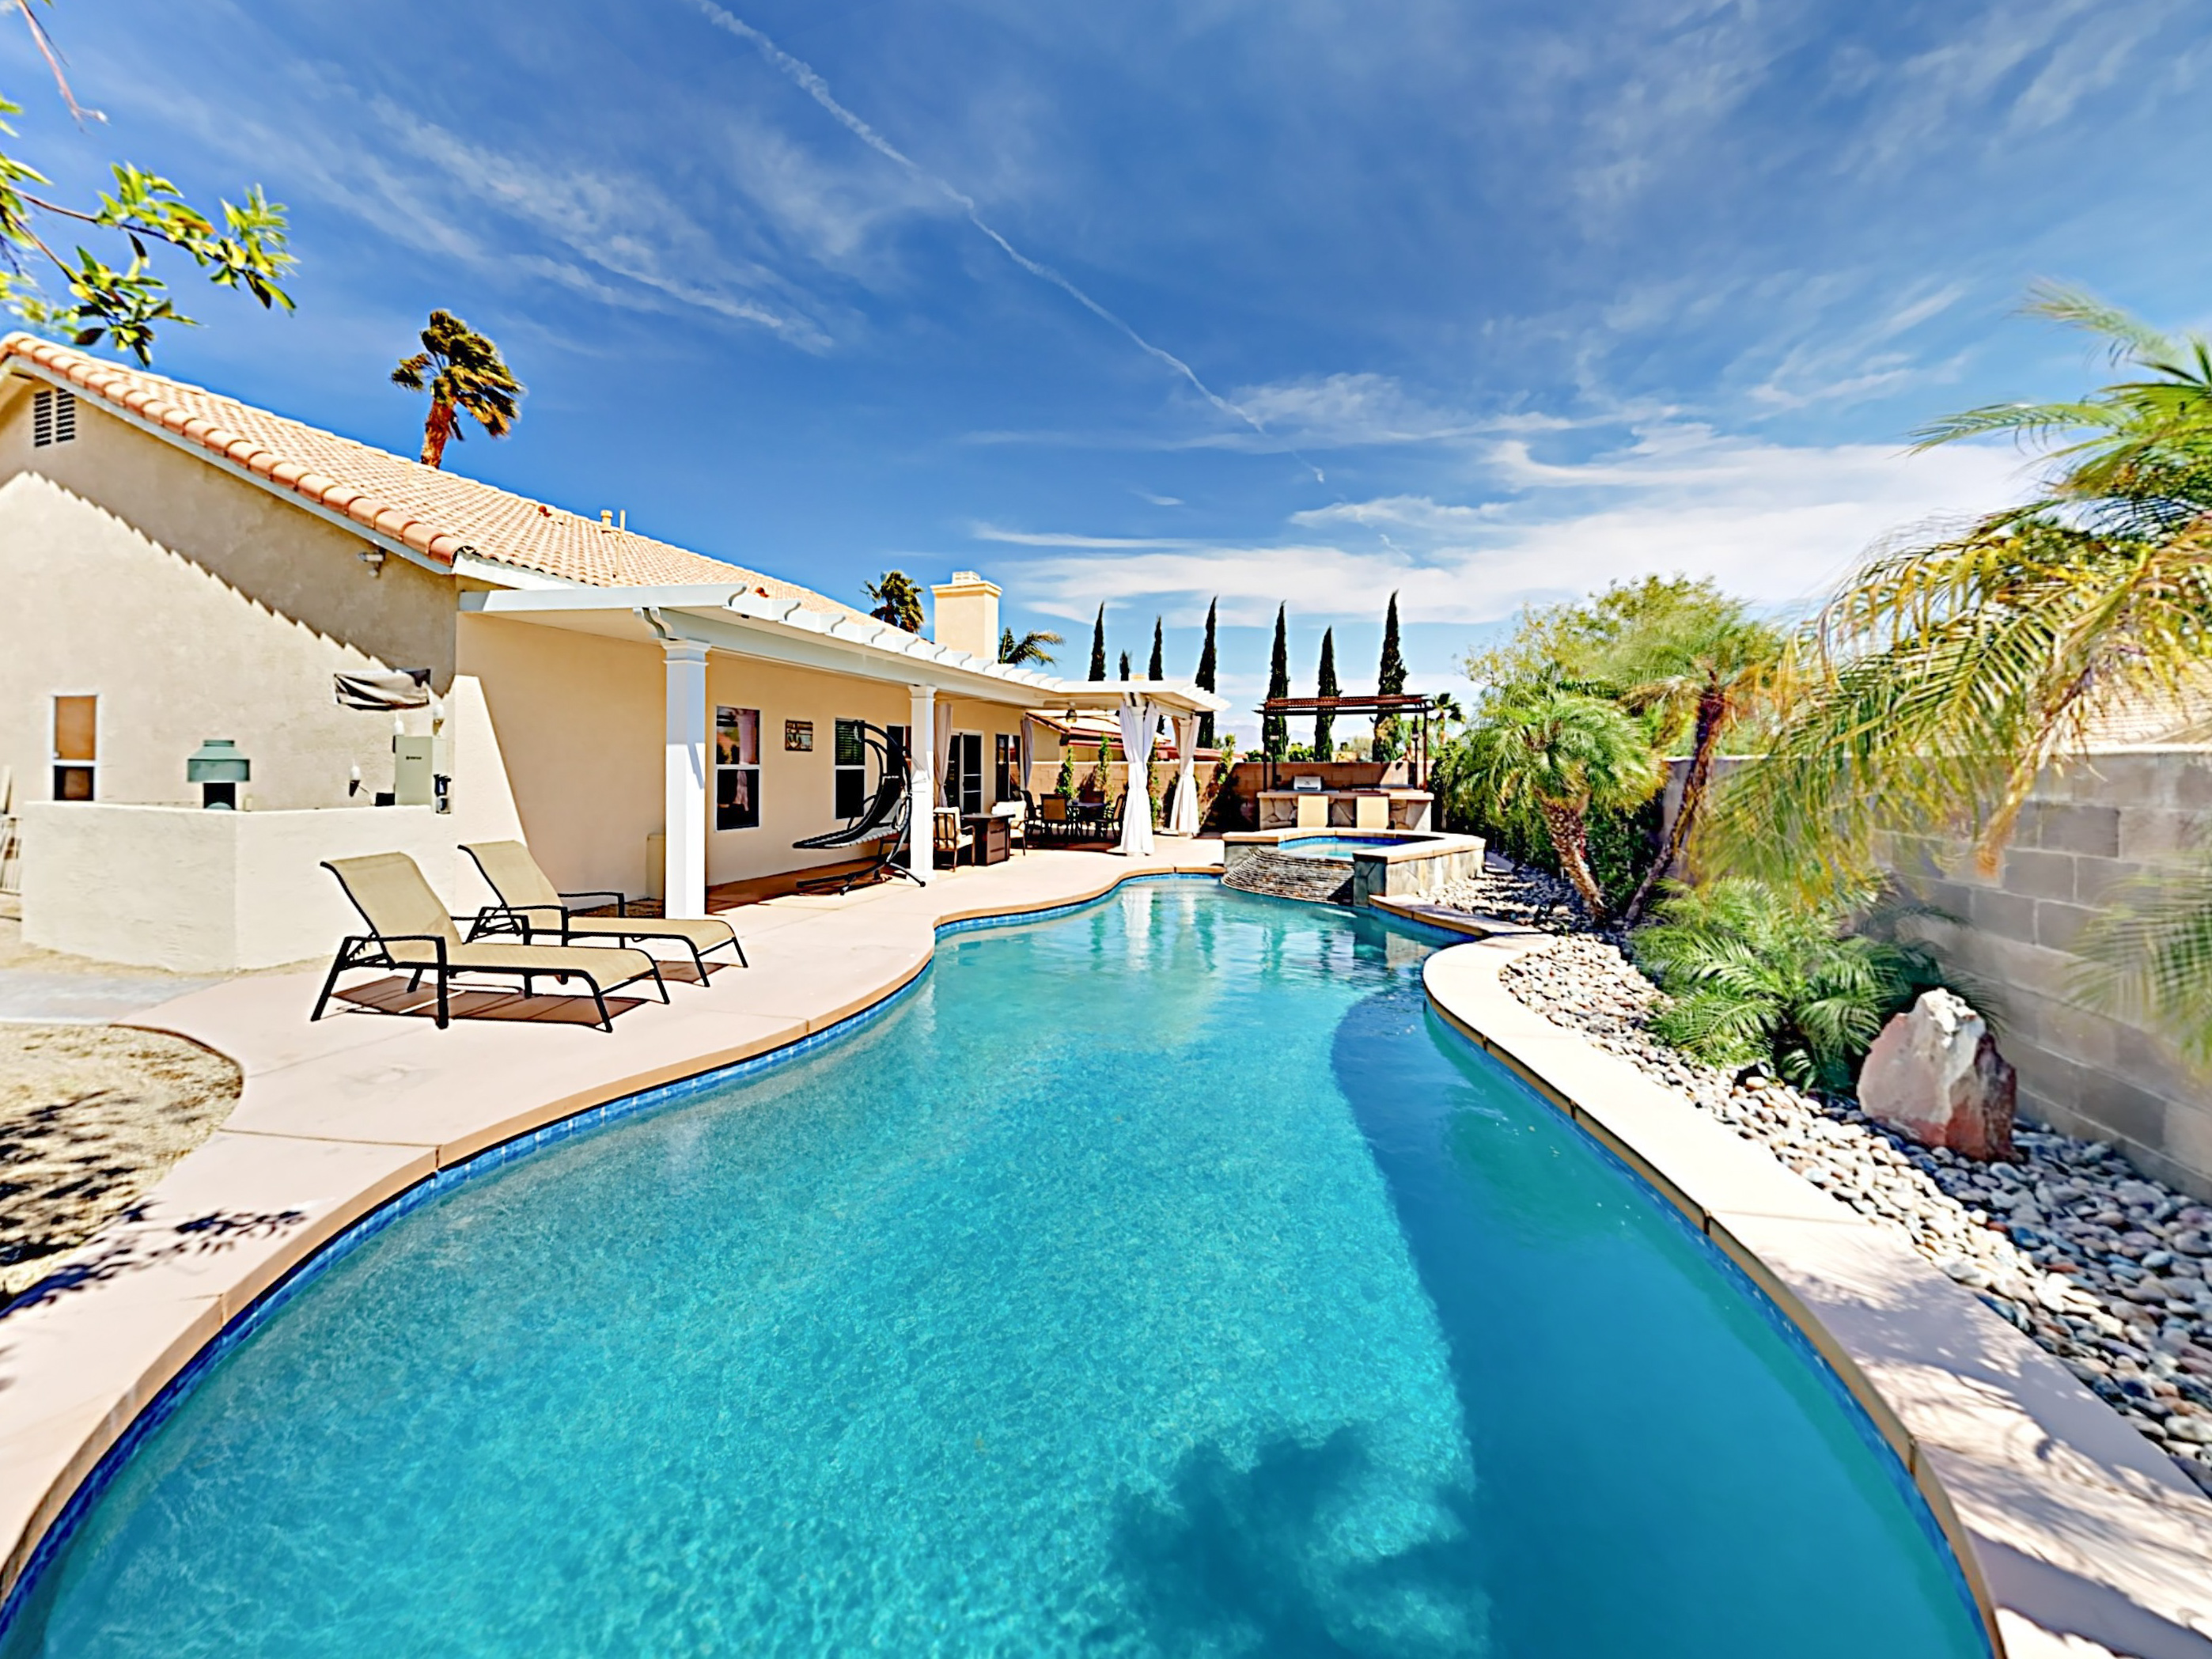 Cathedral City CA Vacation Rental Welcome to Cathedral